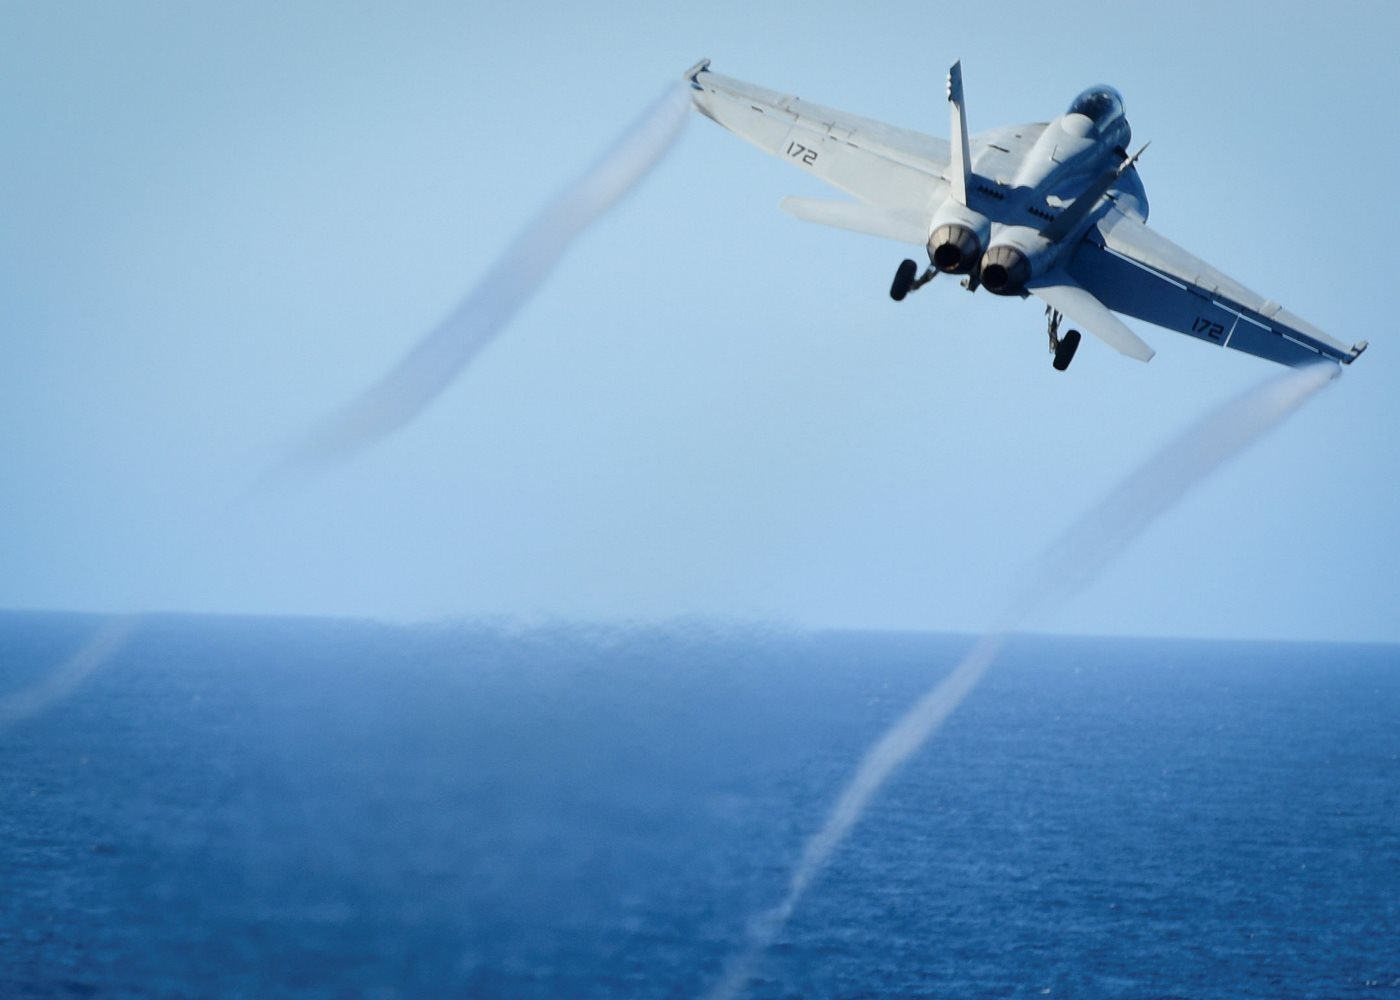 An F/A-18E Super Hornet.  On June 18, an F/A-18E plane of the U.S. Air Force shot down Syria's Sukhoi-22 fighter-bomber.